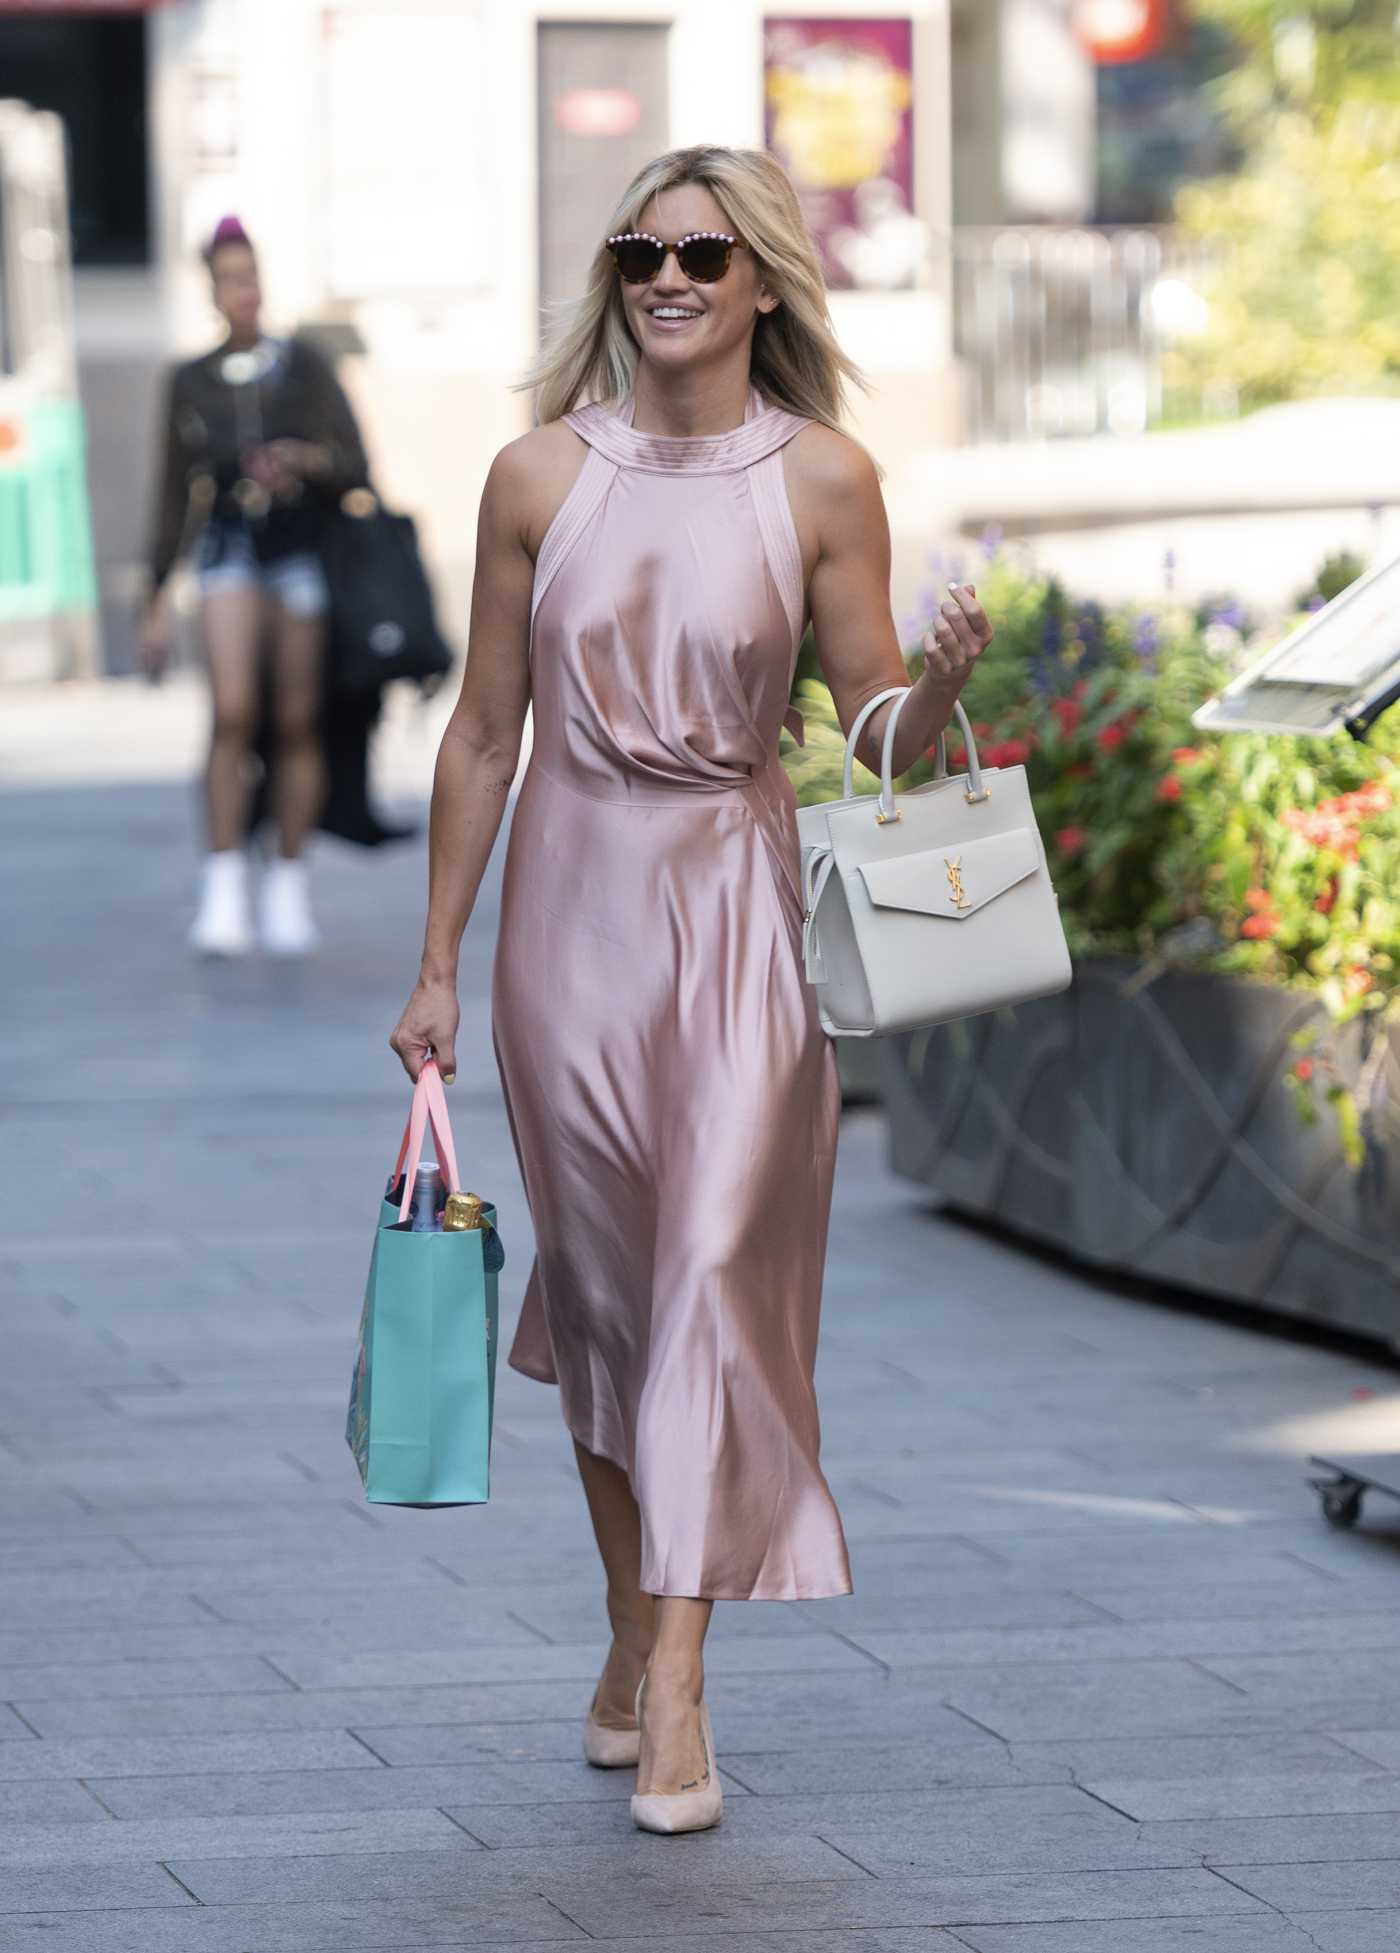 Ashley Roberts in a Pink Dress Arrives at the Global Radio Studios in London 09/14/2020